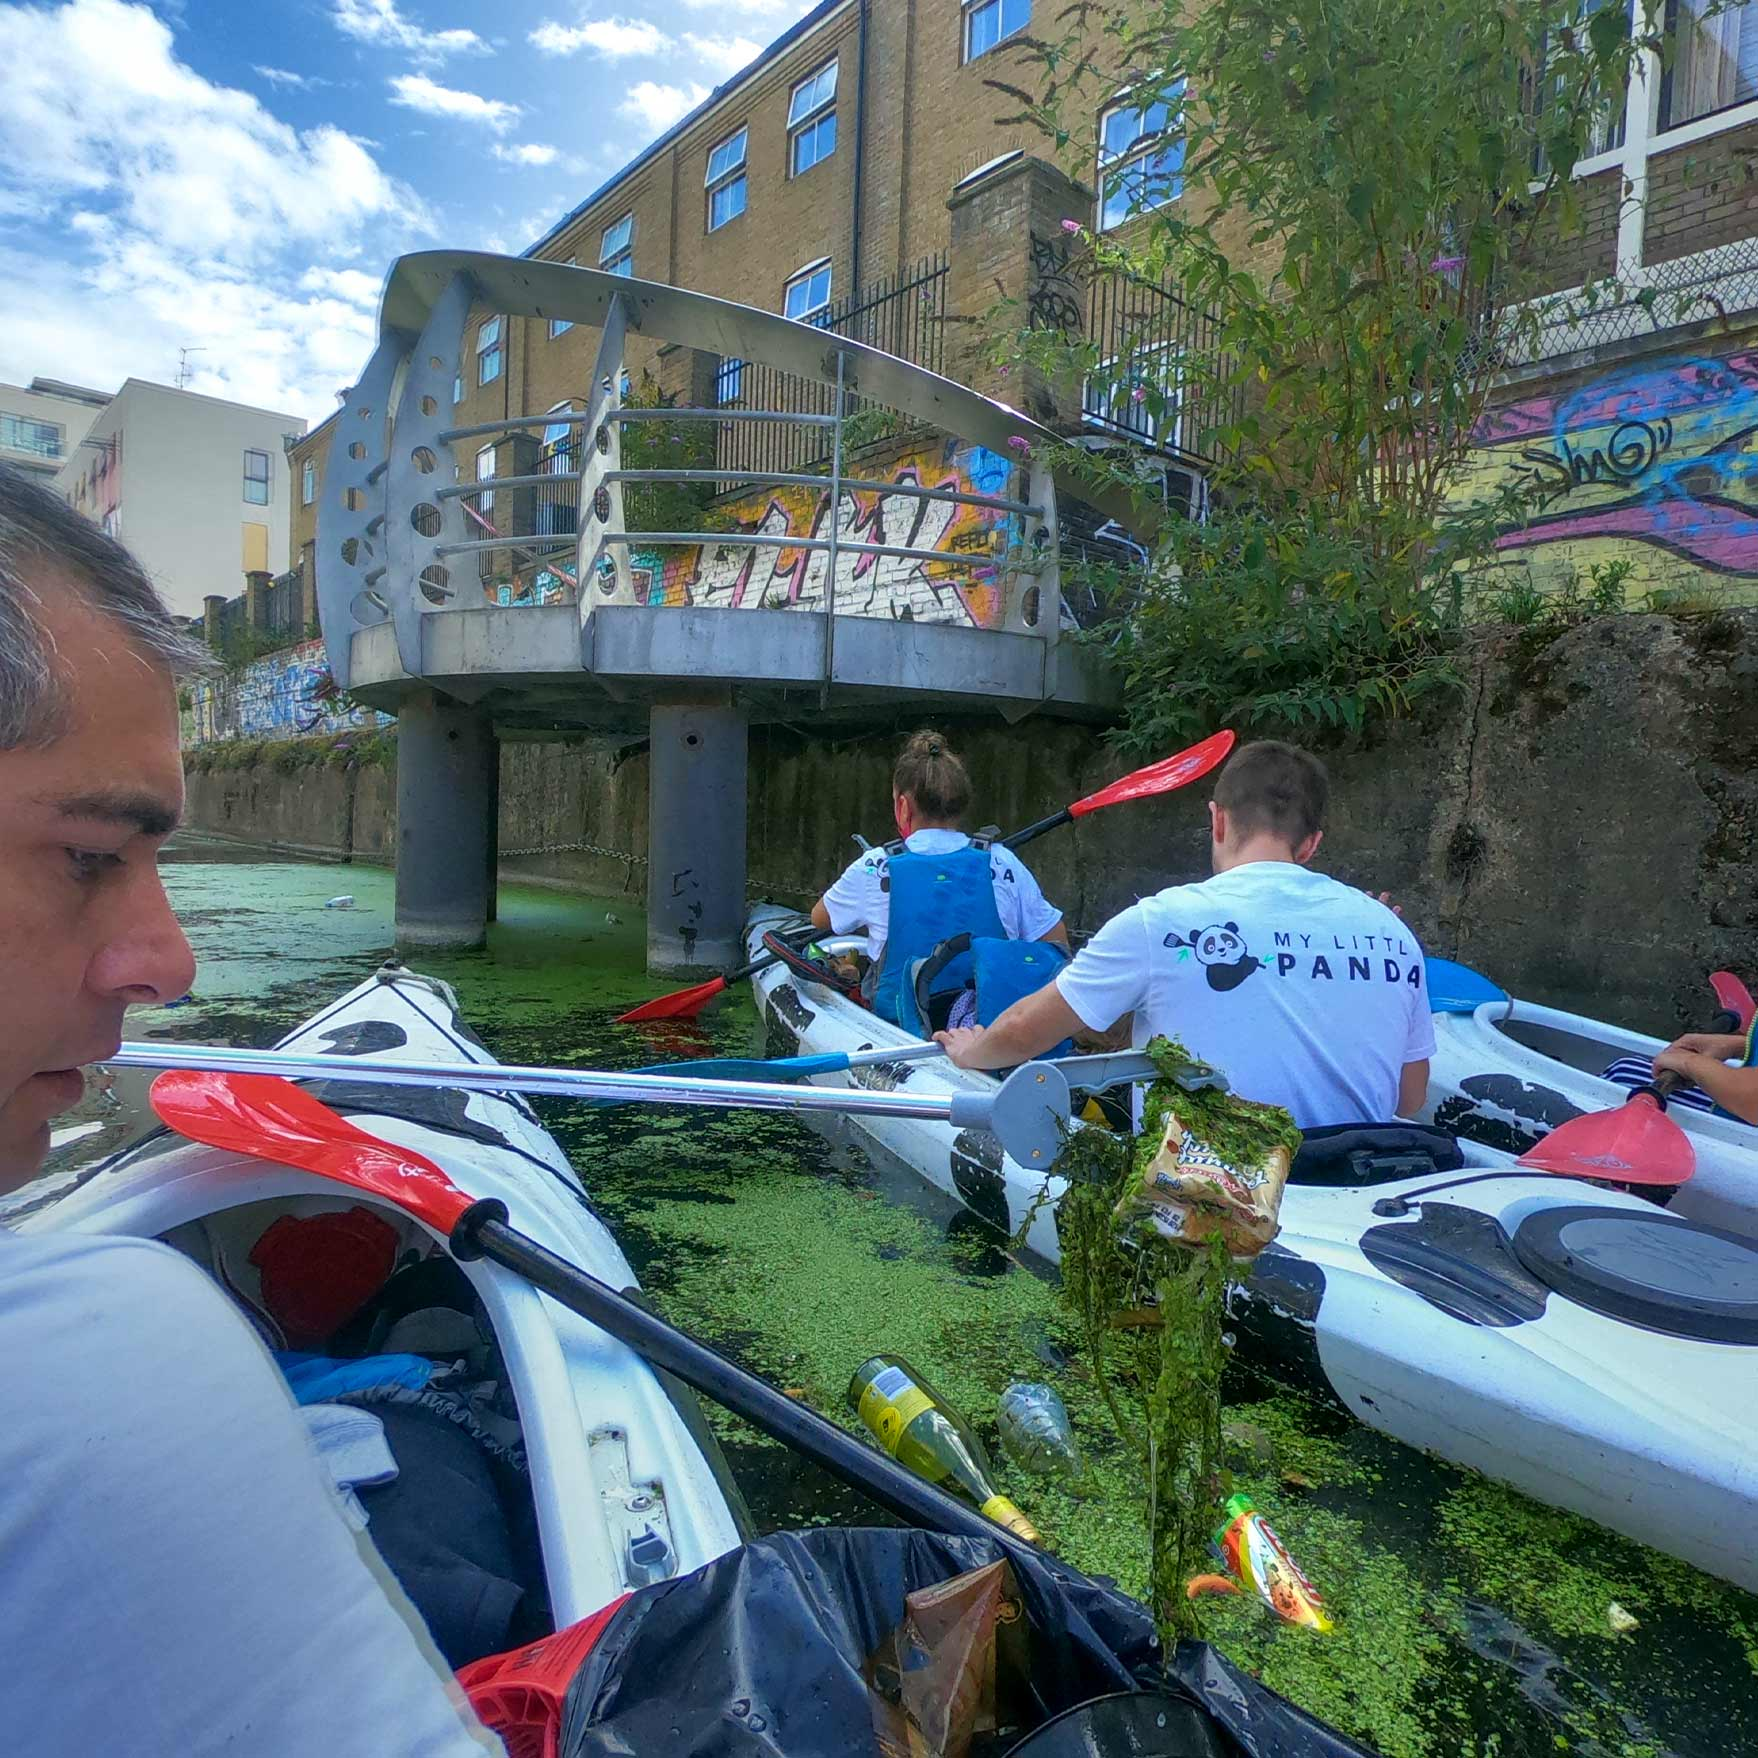 My Little Panda event - Cleaning River Thames from plastic